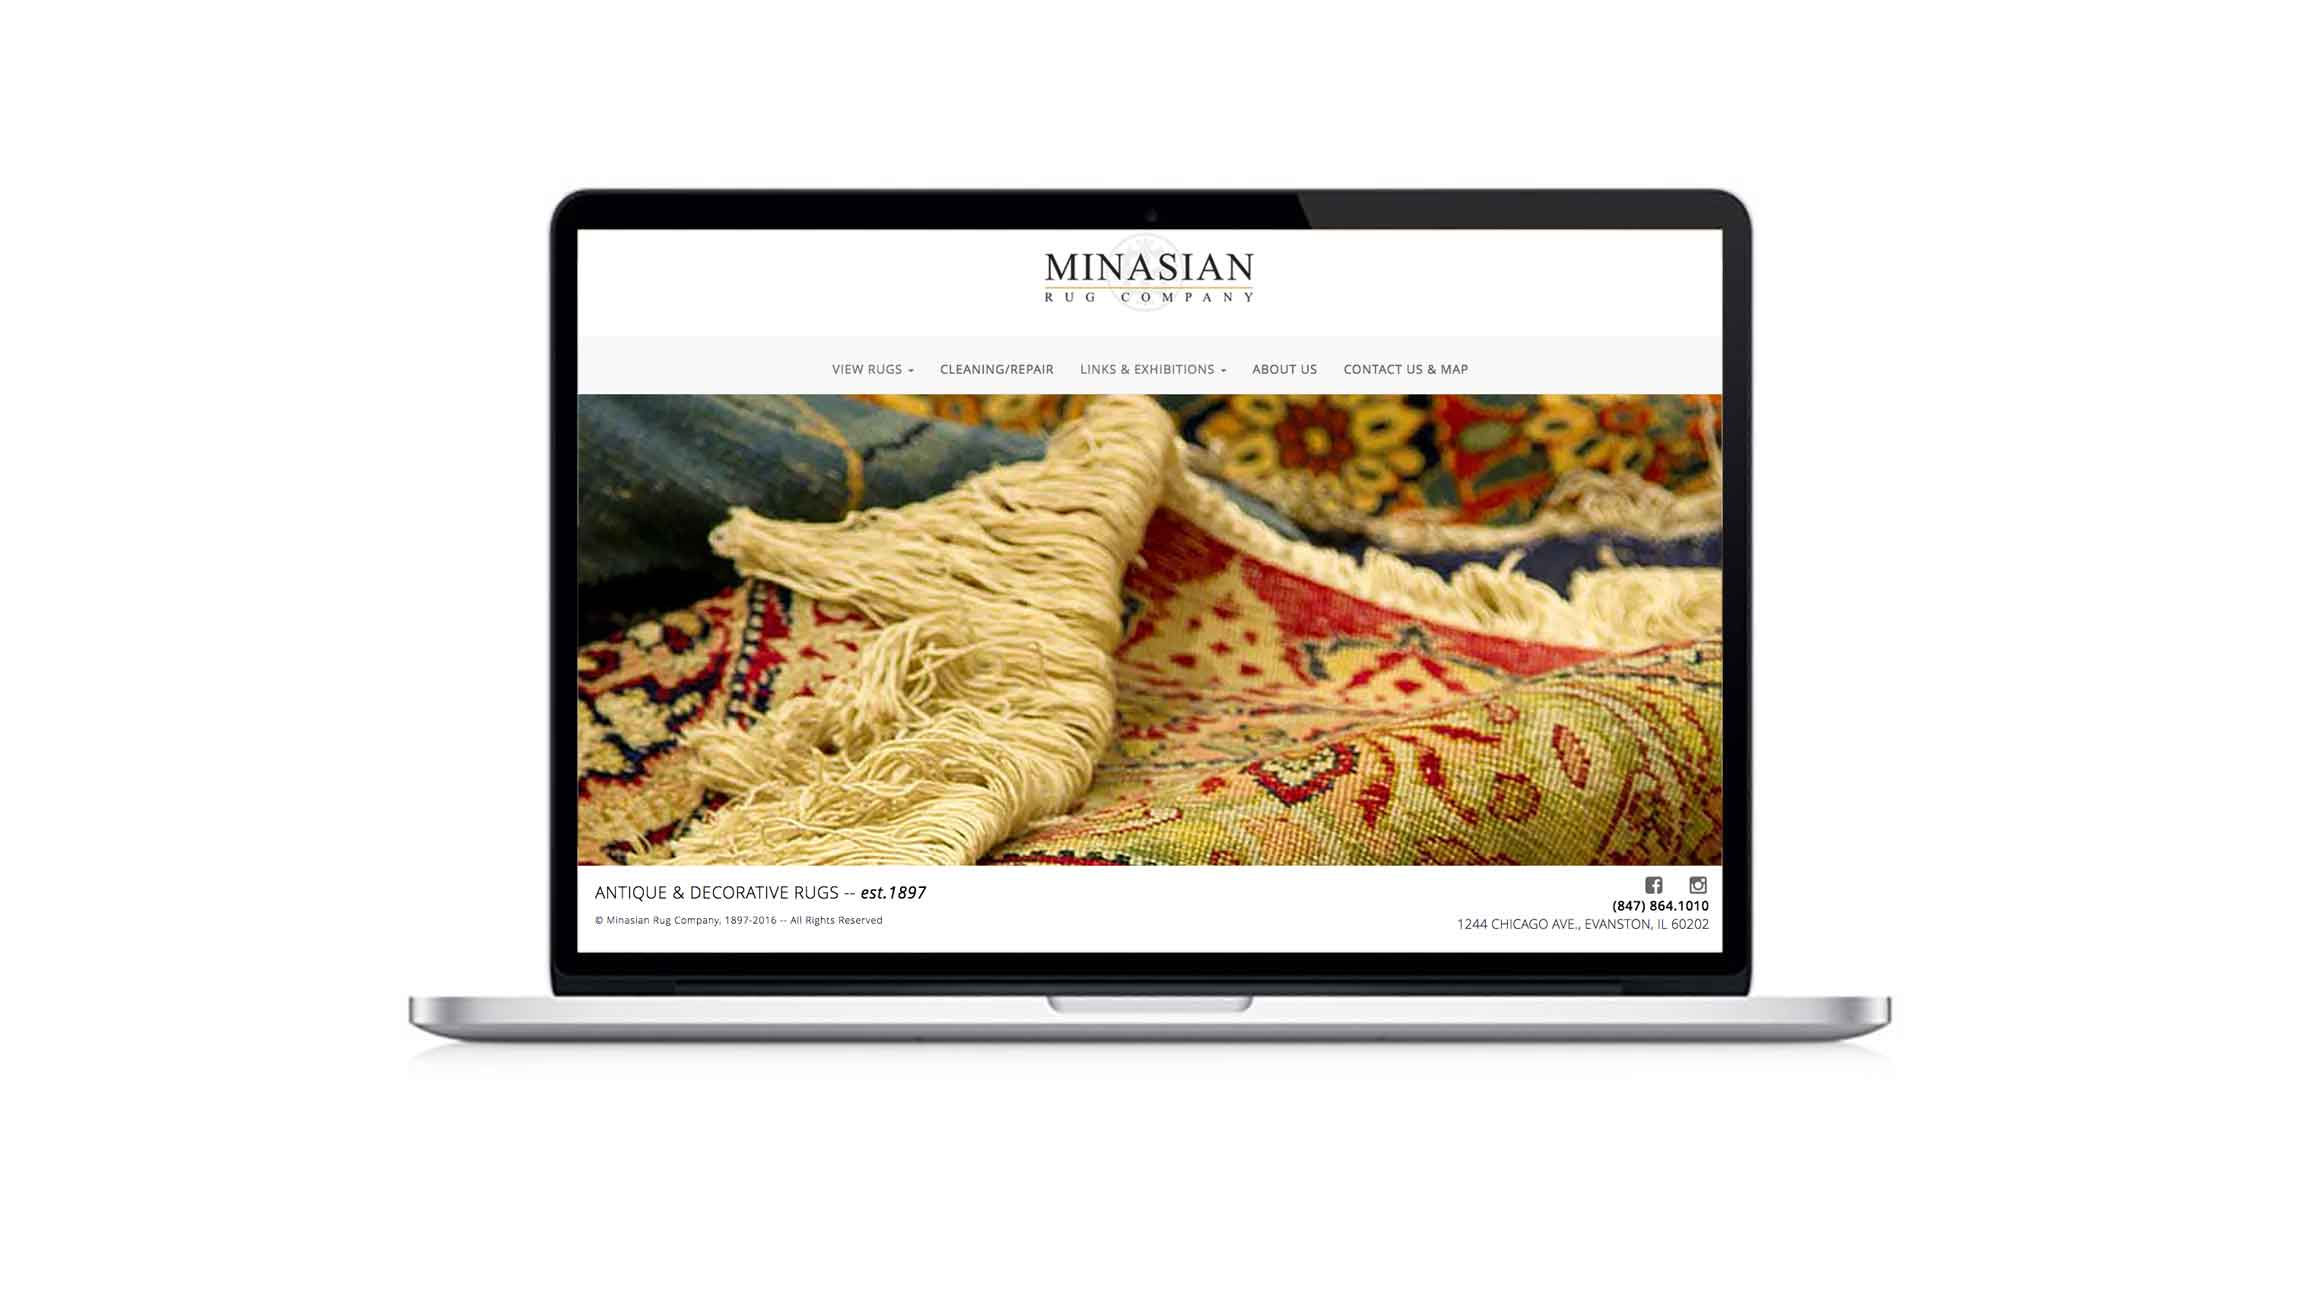 A responsive website for the Minasian Rug Company